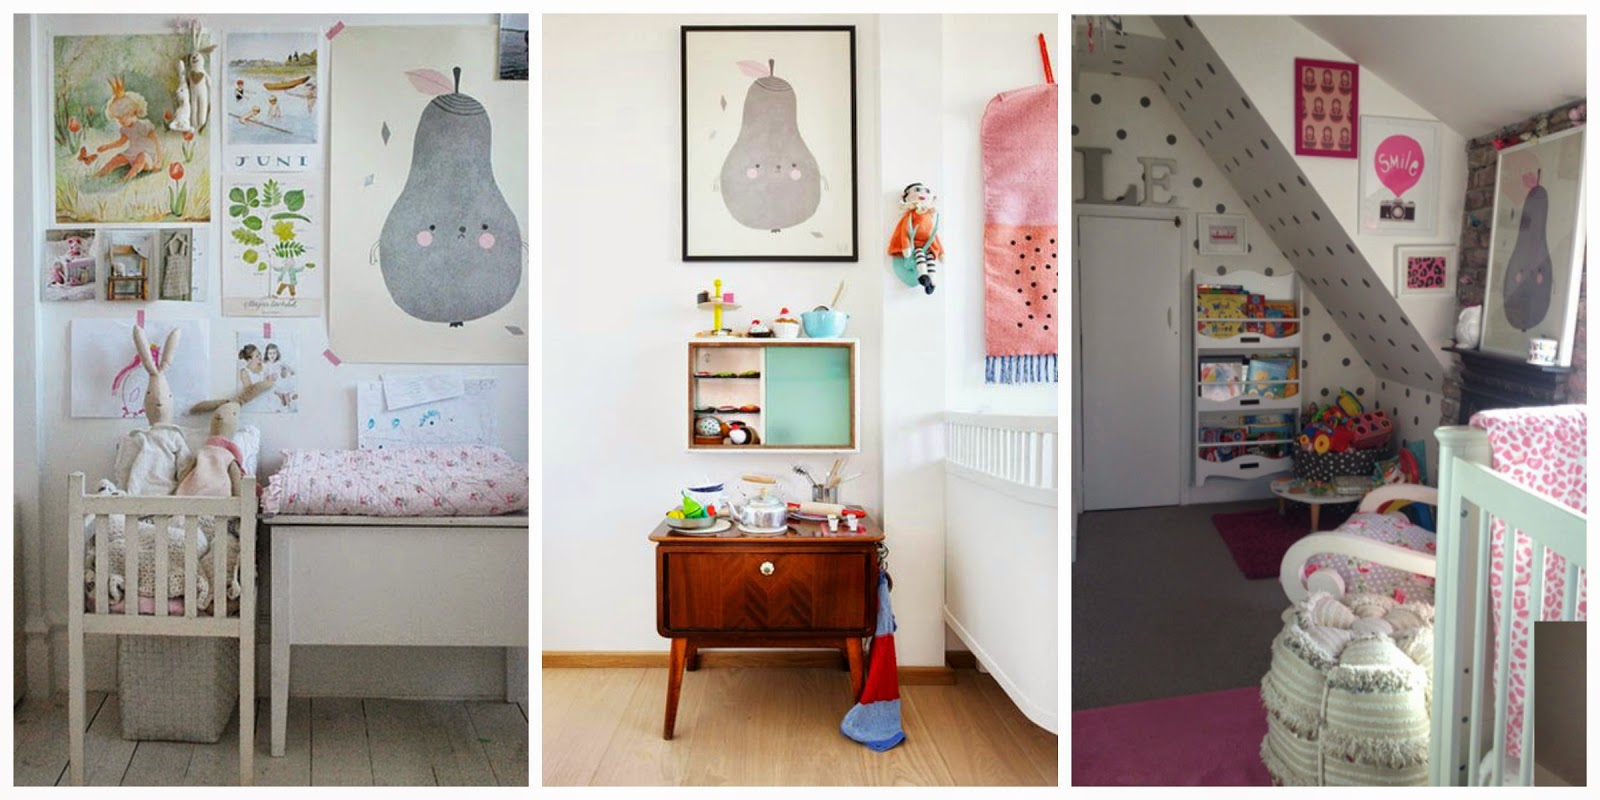 The 5 Coolest Bedroom Items Every Kid Needs According To